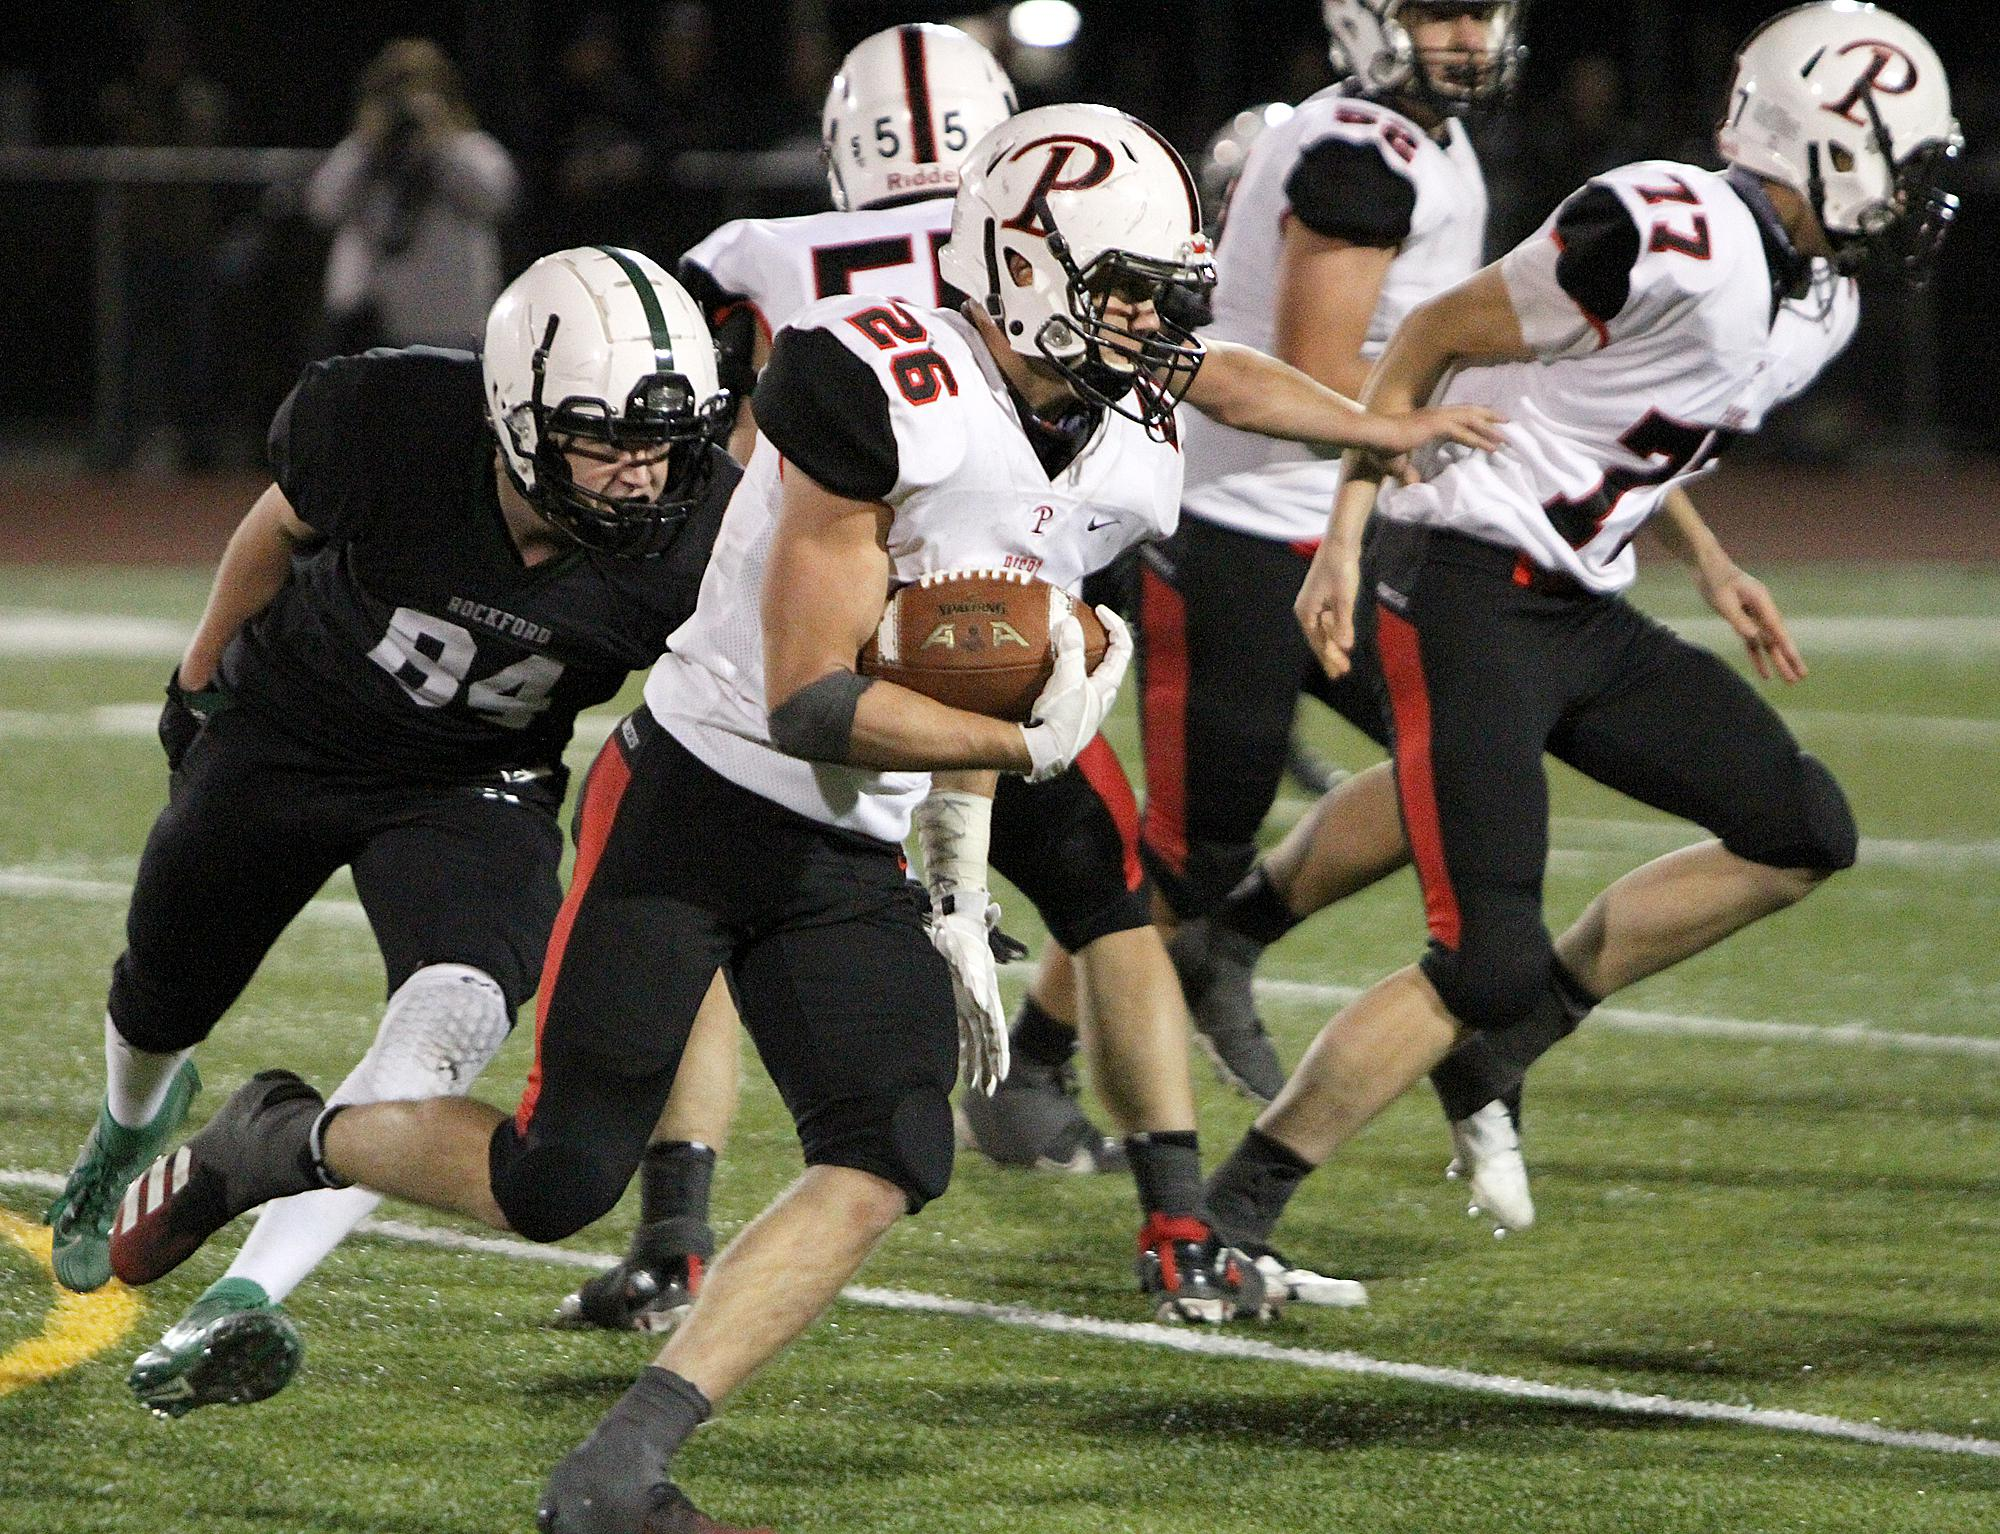 Pierz senior running back Mike Leidenfrost ran for 161 yards and three TDs as Pierz rallied on the road at Rockford for a 32-13 victory Friday night. Pierz, ranked No. 4 in the Class 3A AP statewide poll, improves to 5-0. Photo by Drew Herron, SportsEngin